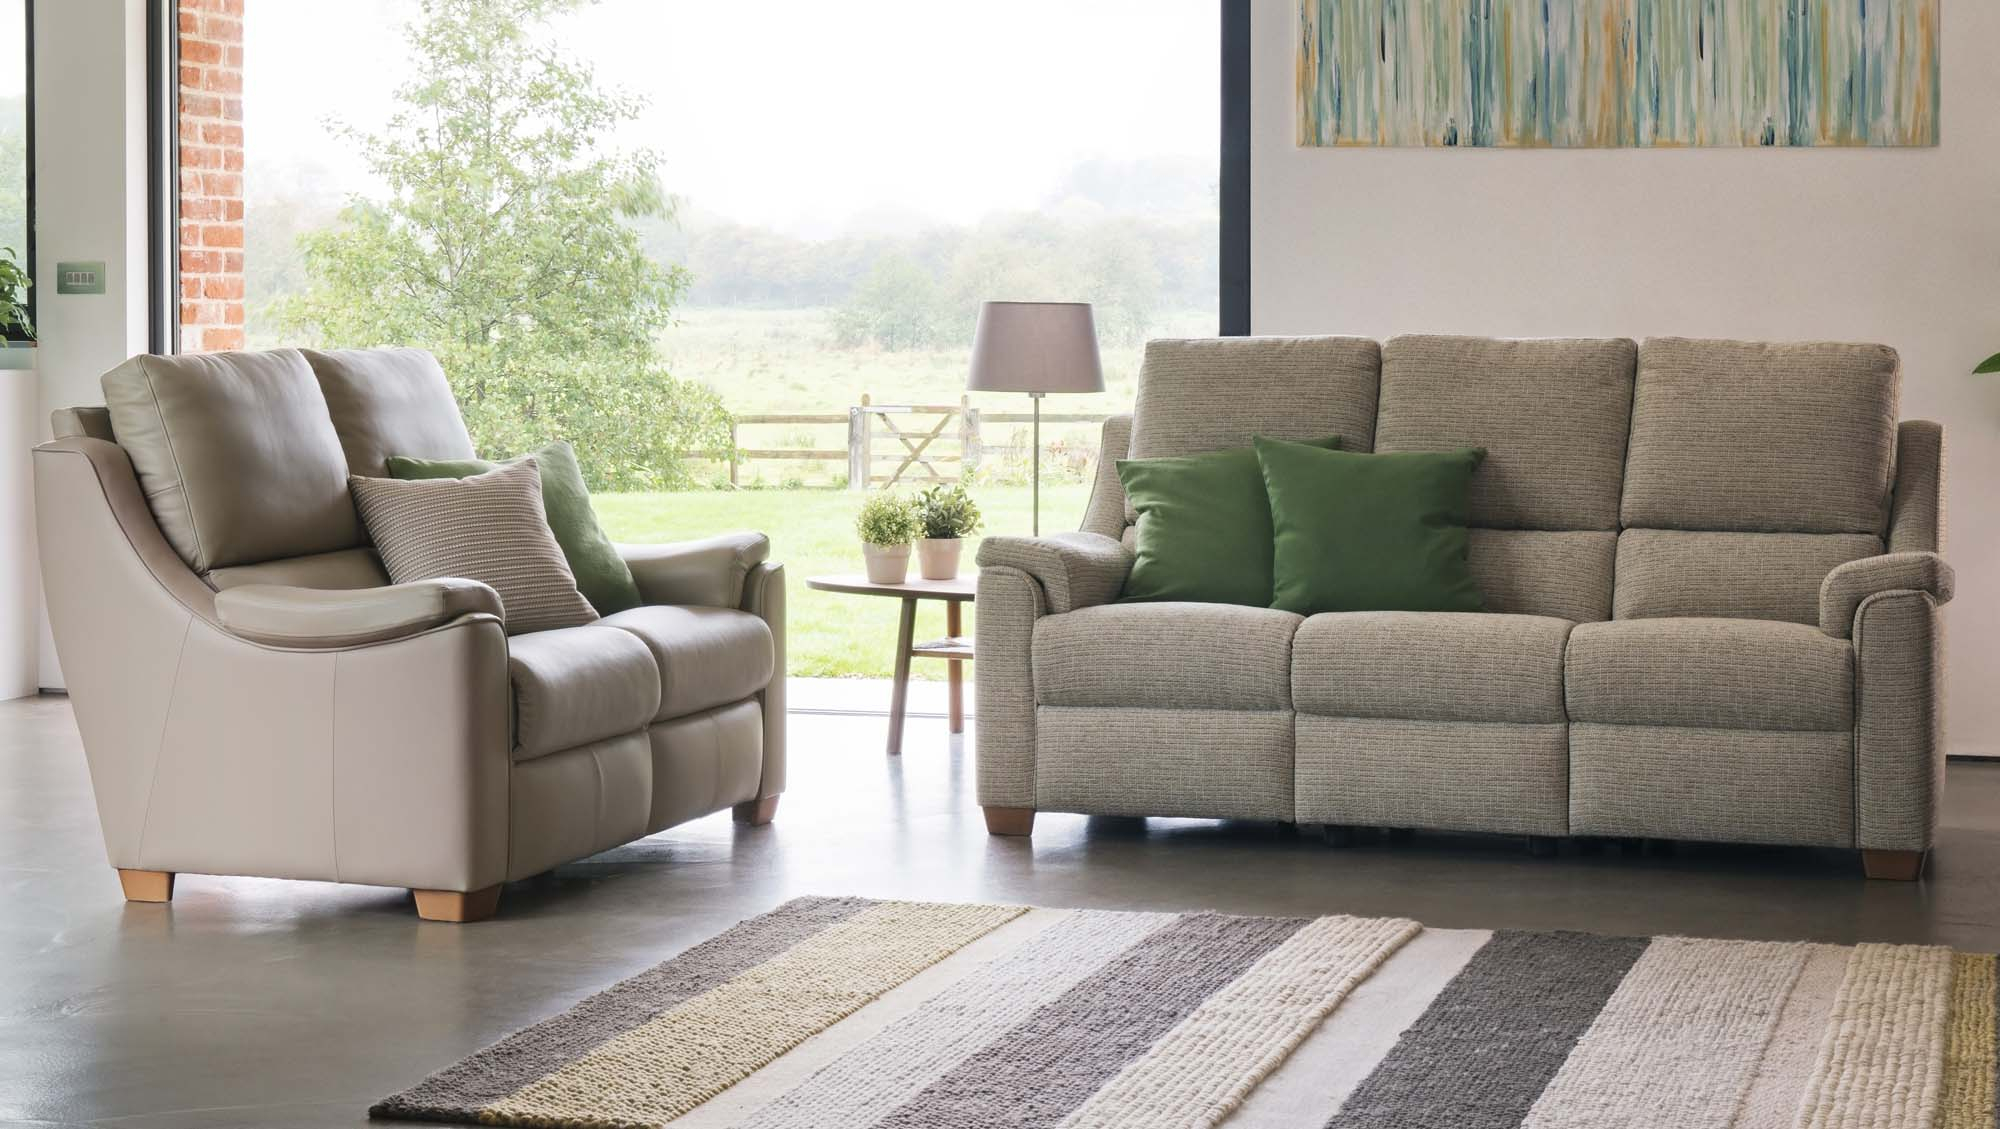 Parker Knoll Albany – Fabric Ranges – Sofas & Chairs | Tr Hayes With Regard To Parker Sofa Chairs (View 17 of 25)